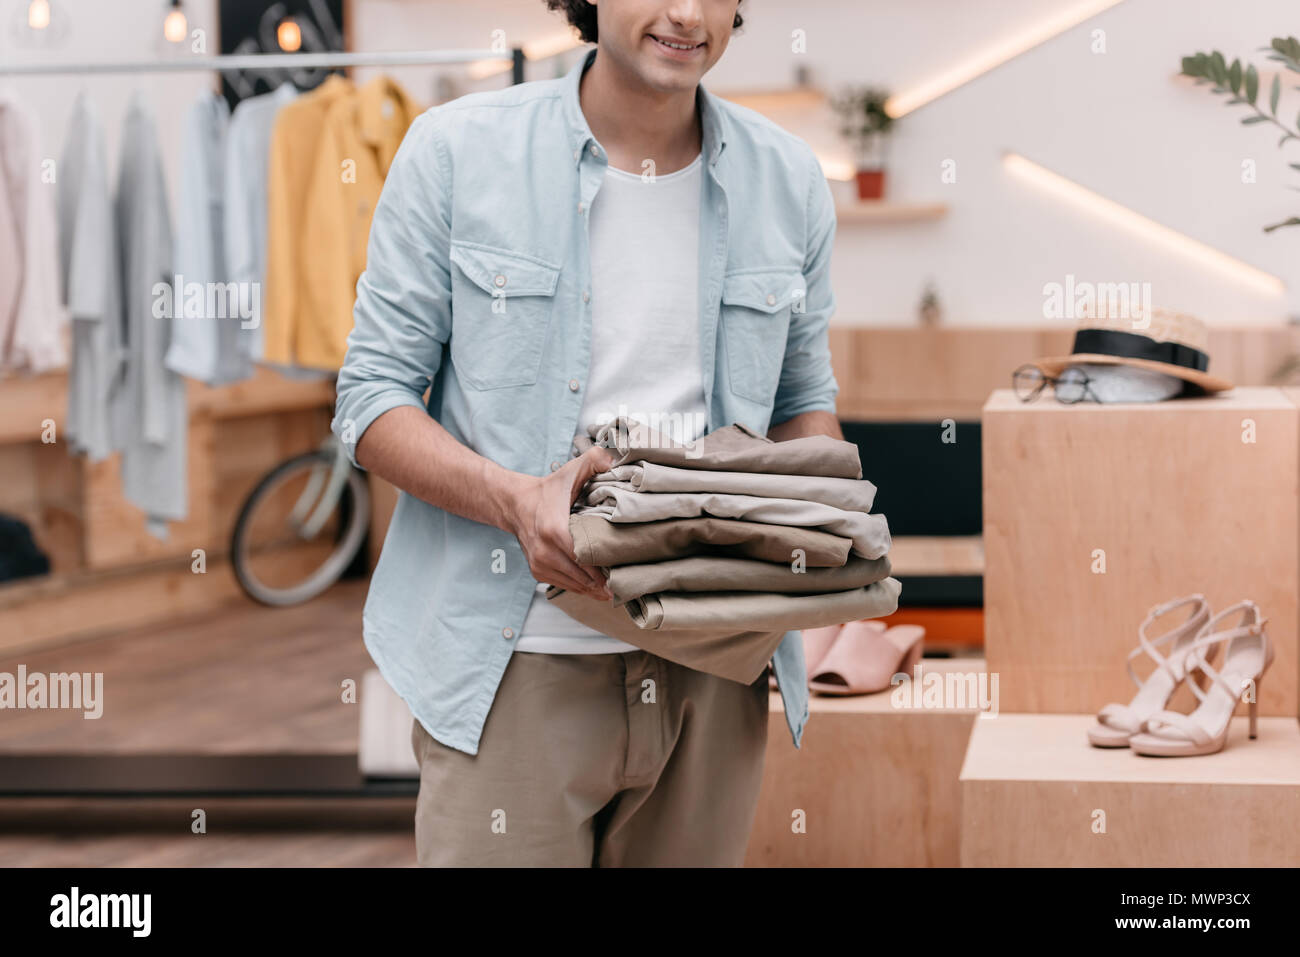 cropped shot of young business owner holding pile of pants while working in boutique - Stock Image